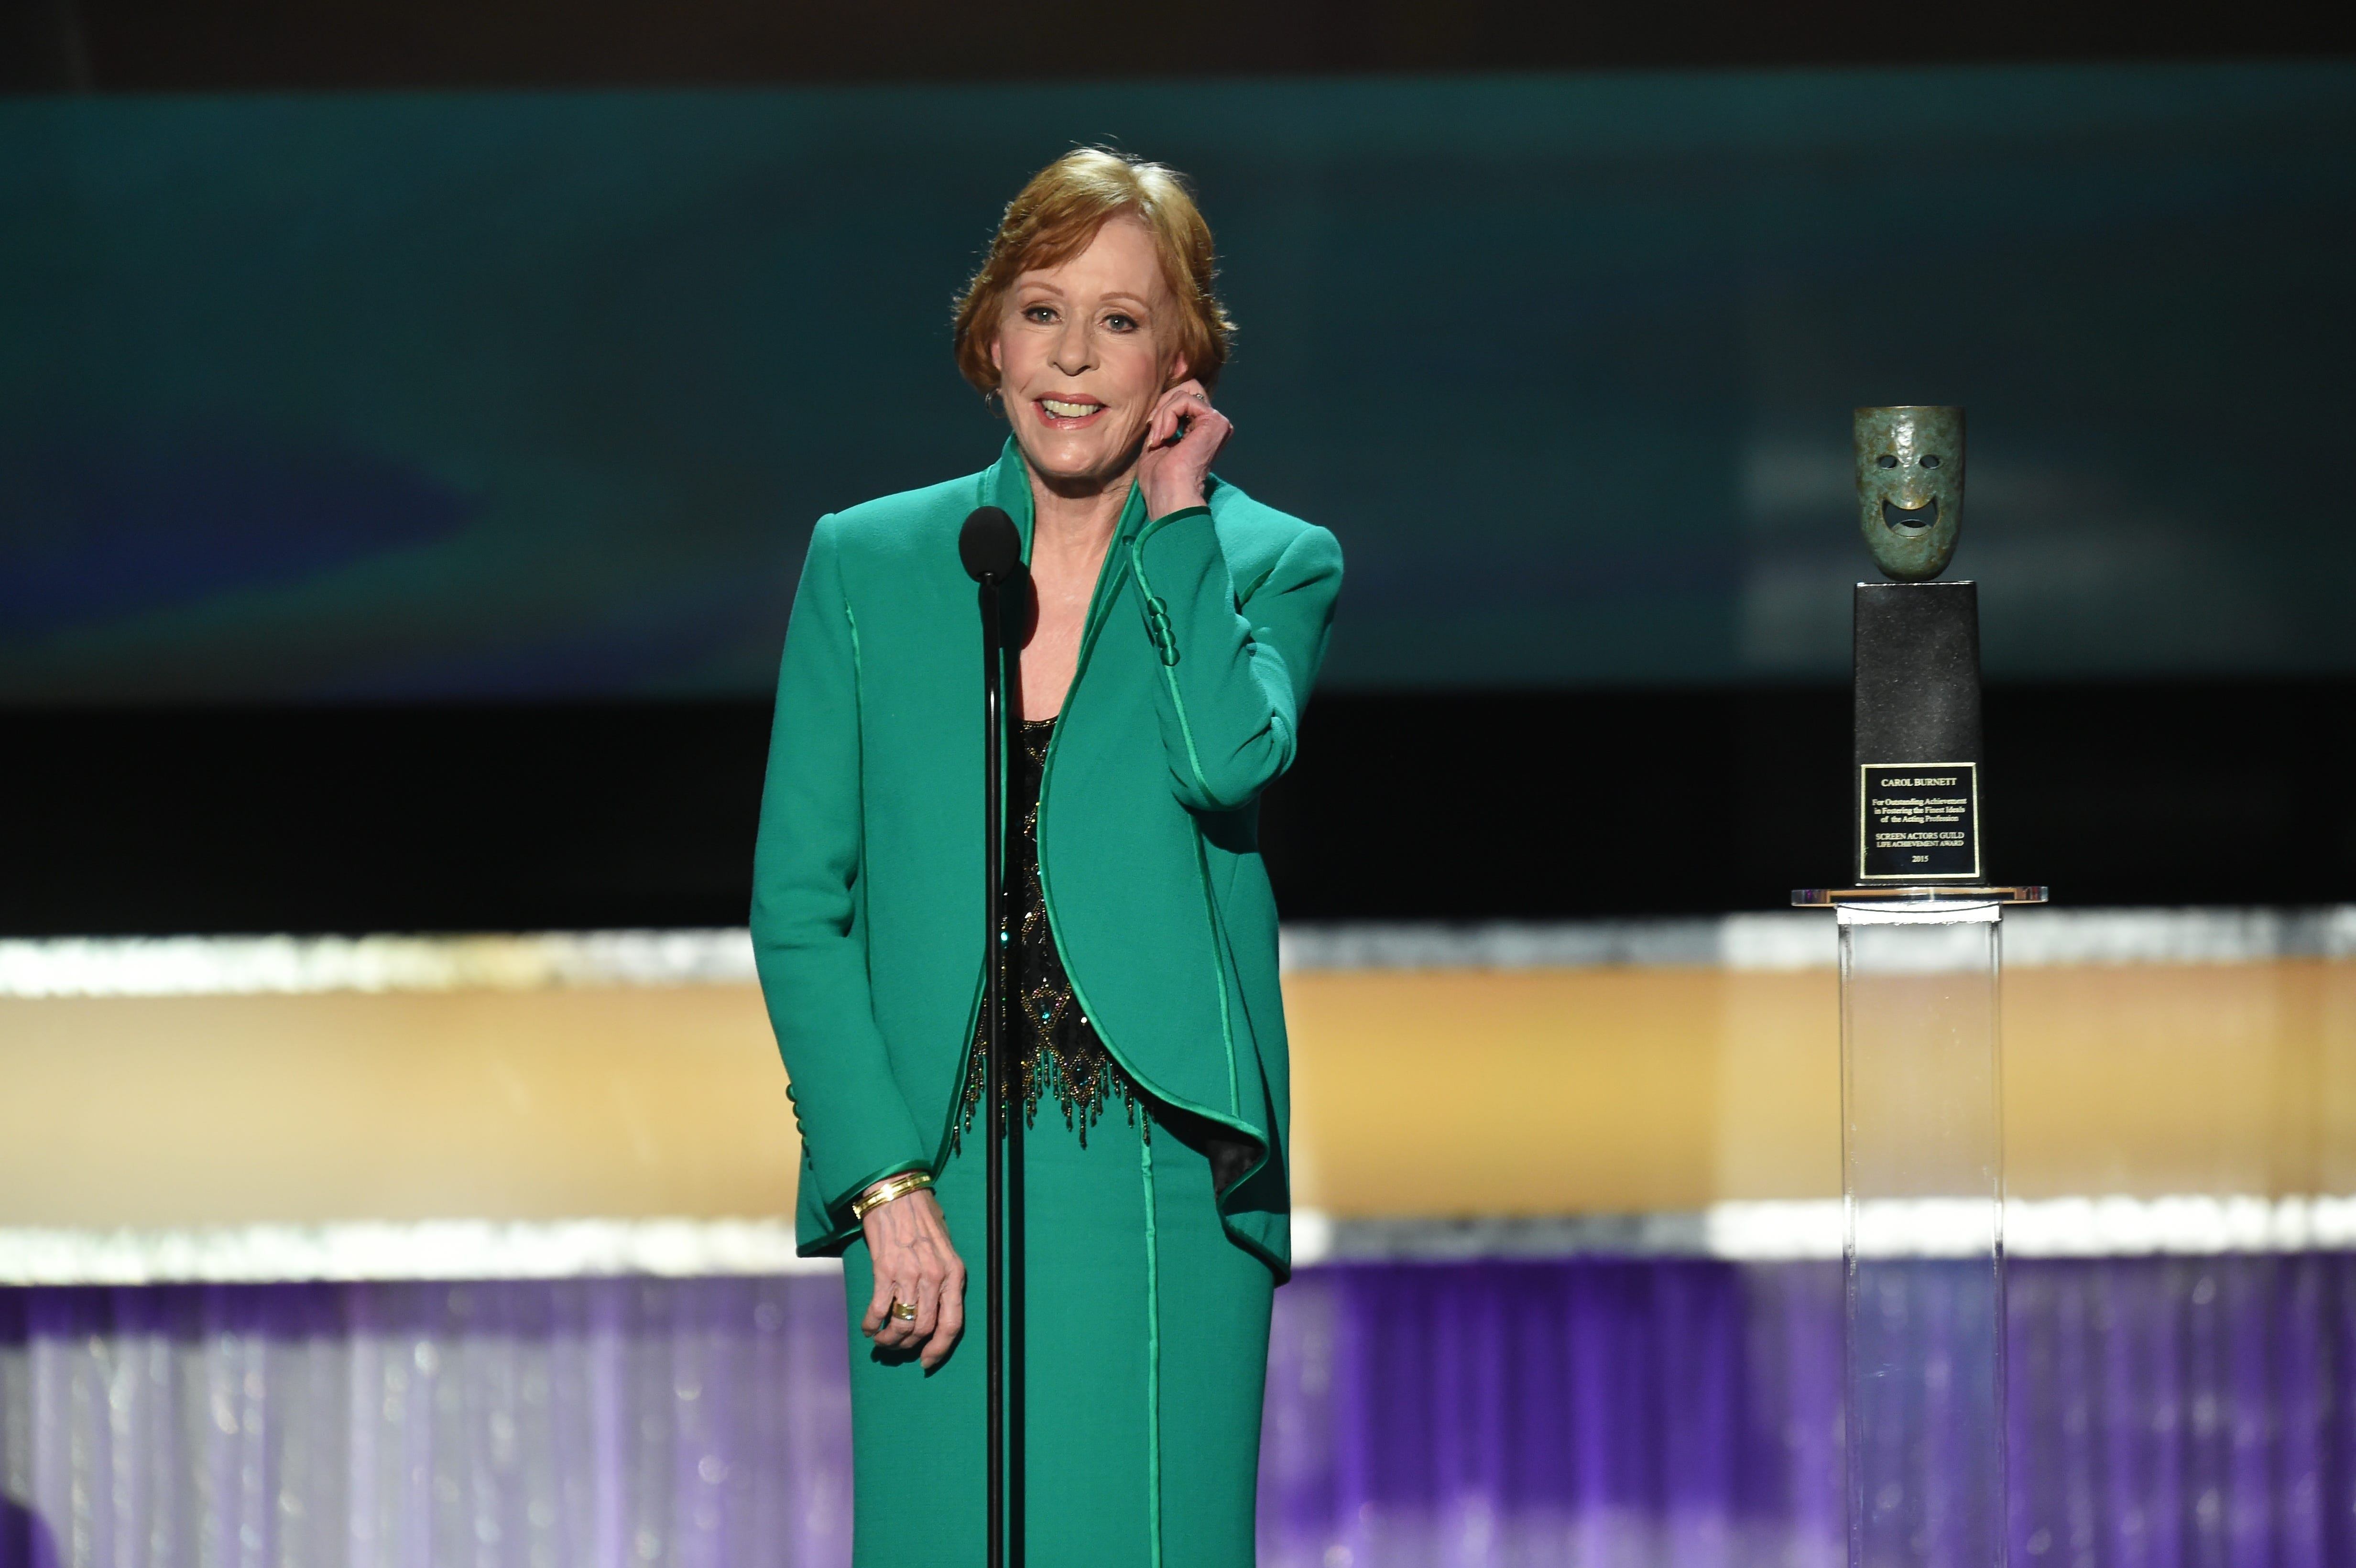 Golden Globes 2019: 5 moments to watch for at Sunday's star-packed show